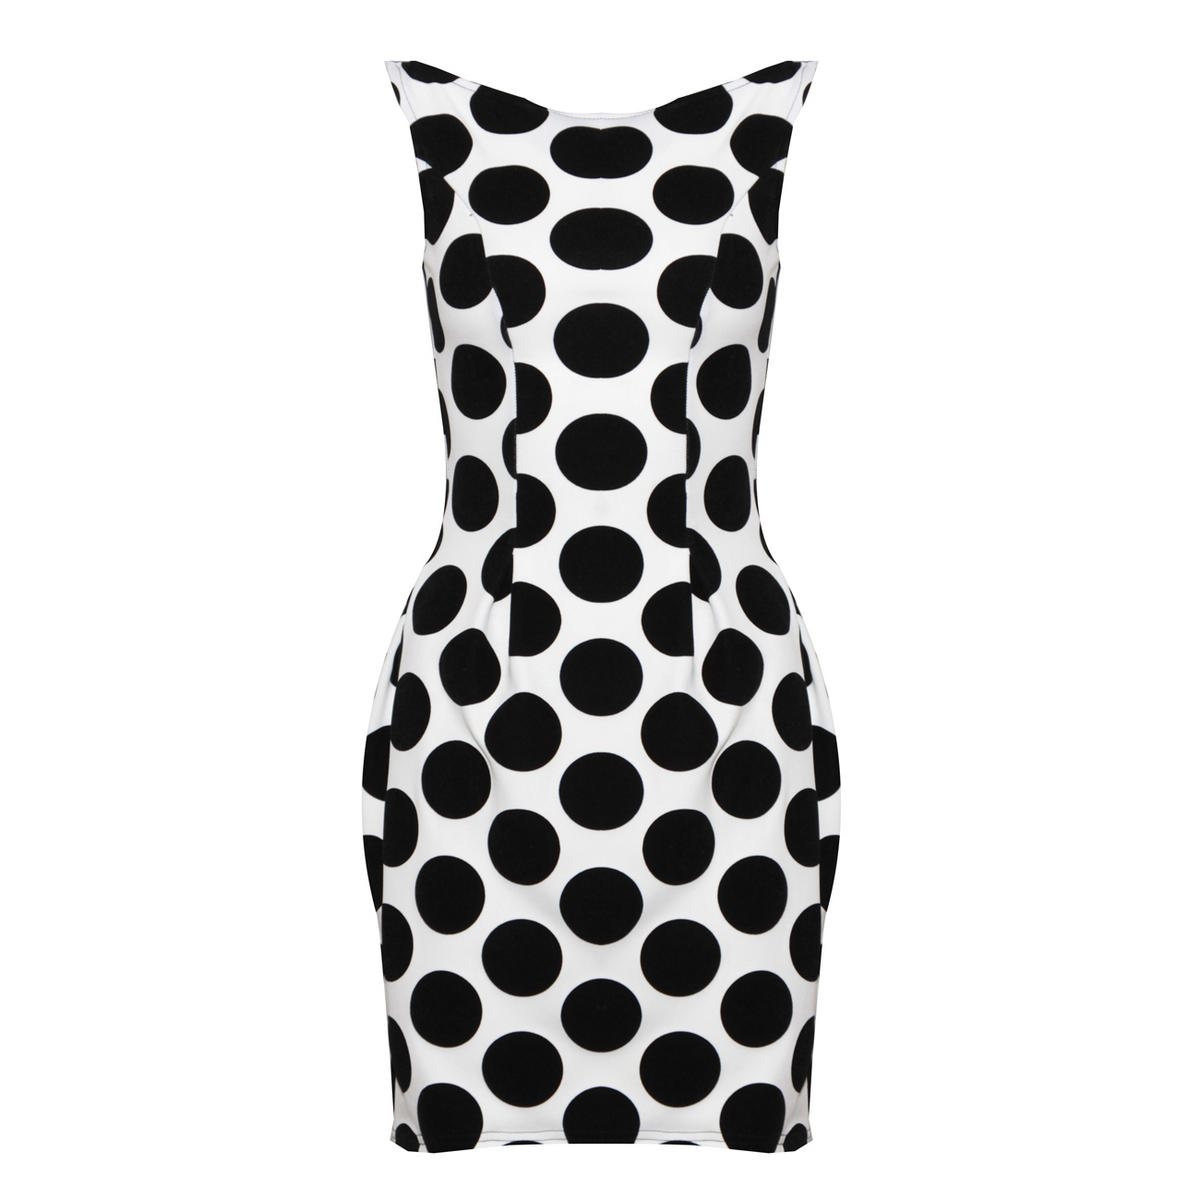 Monochrome Polka Dot Dress Preview